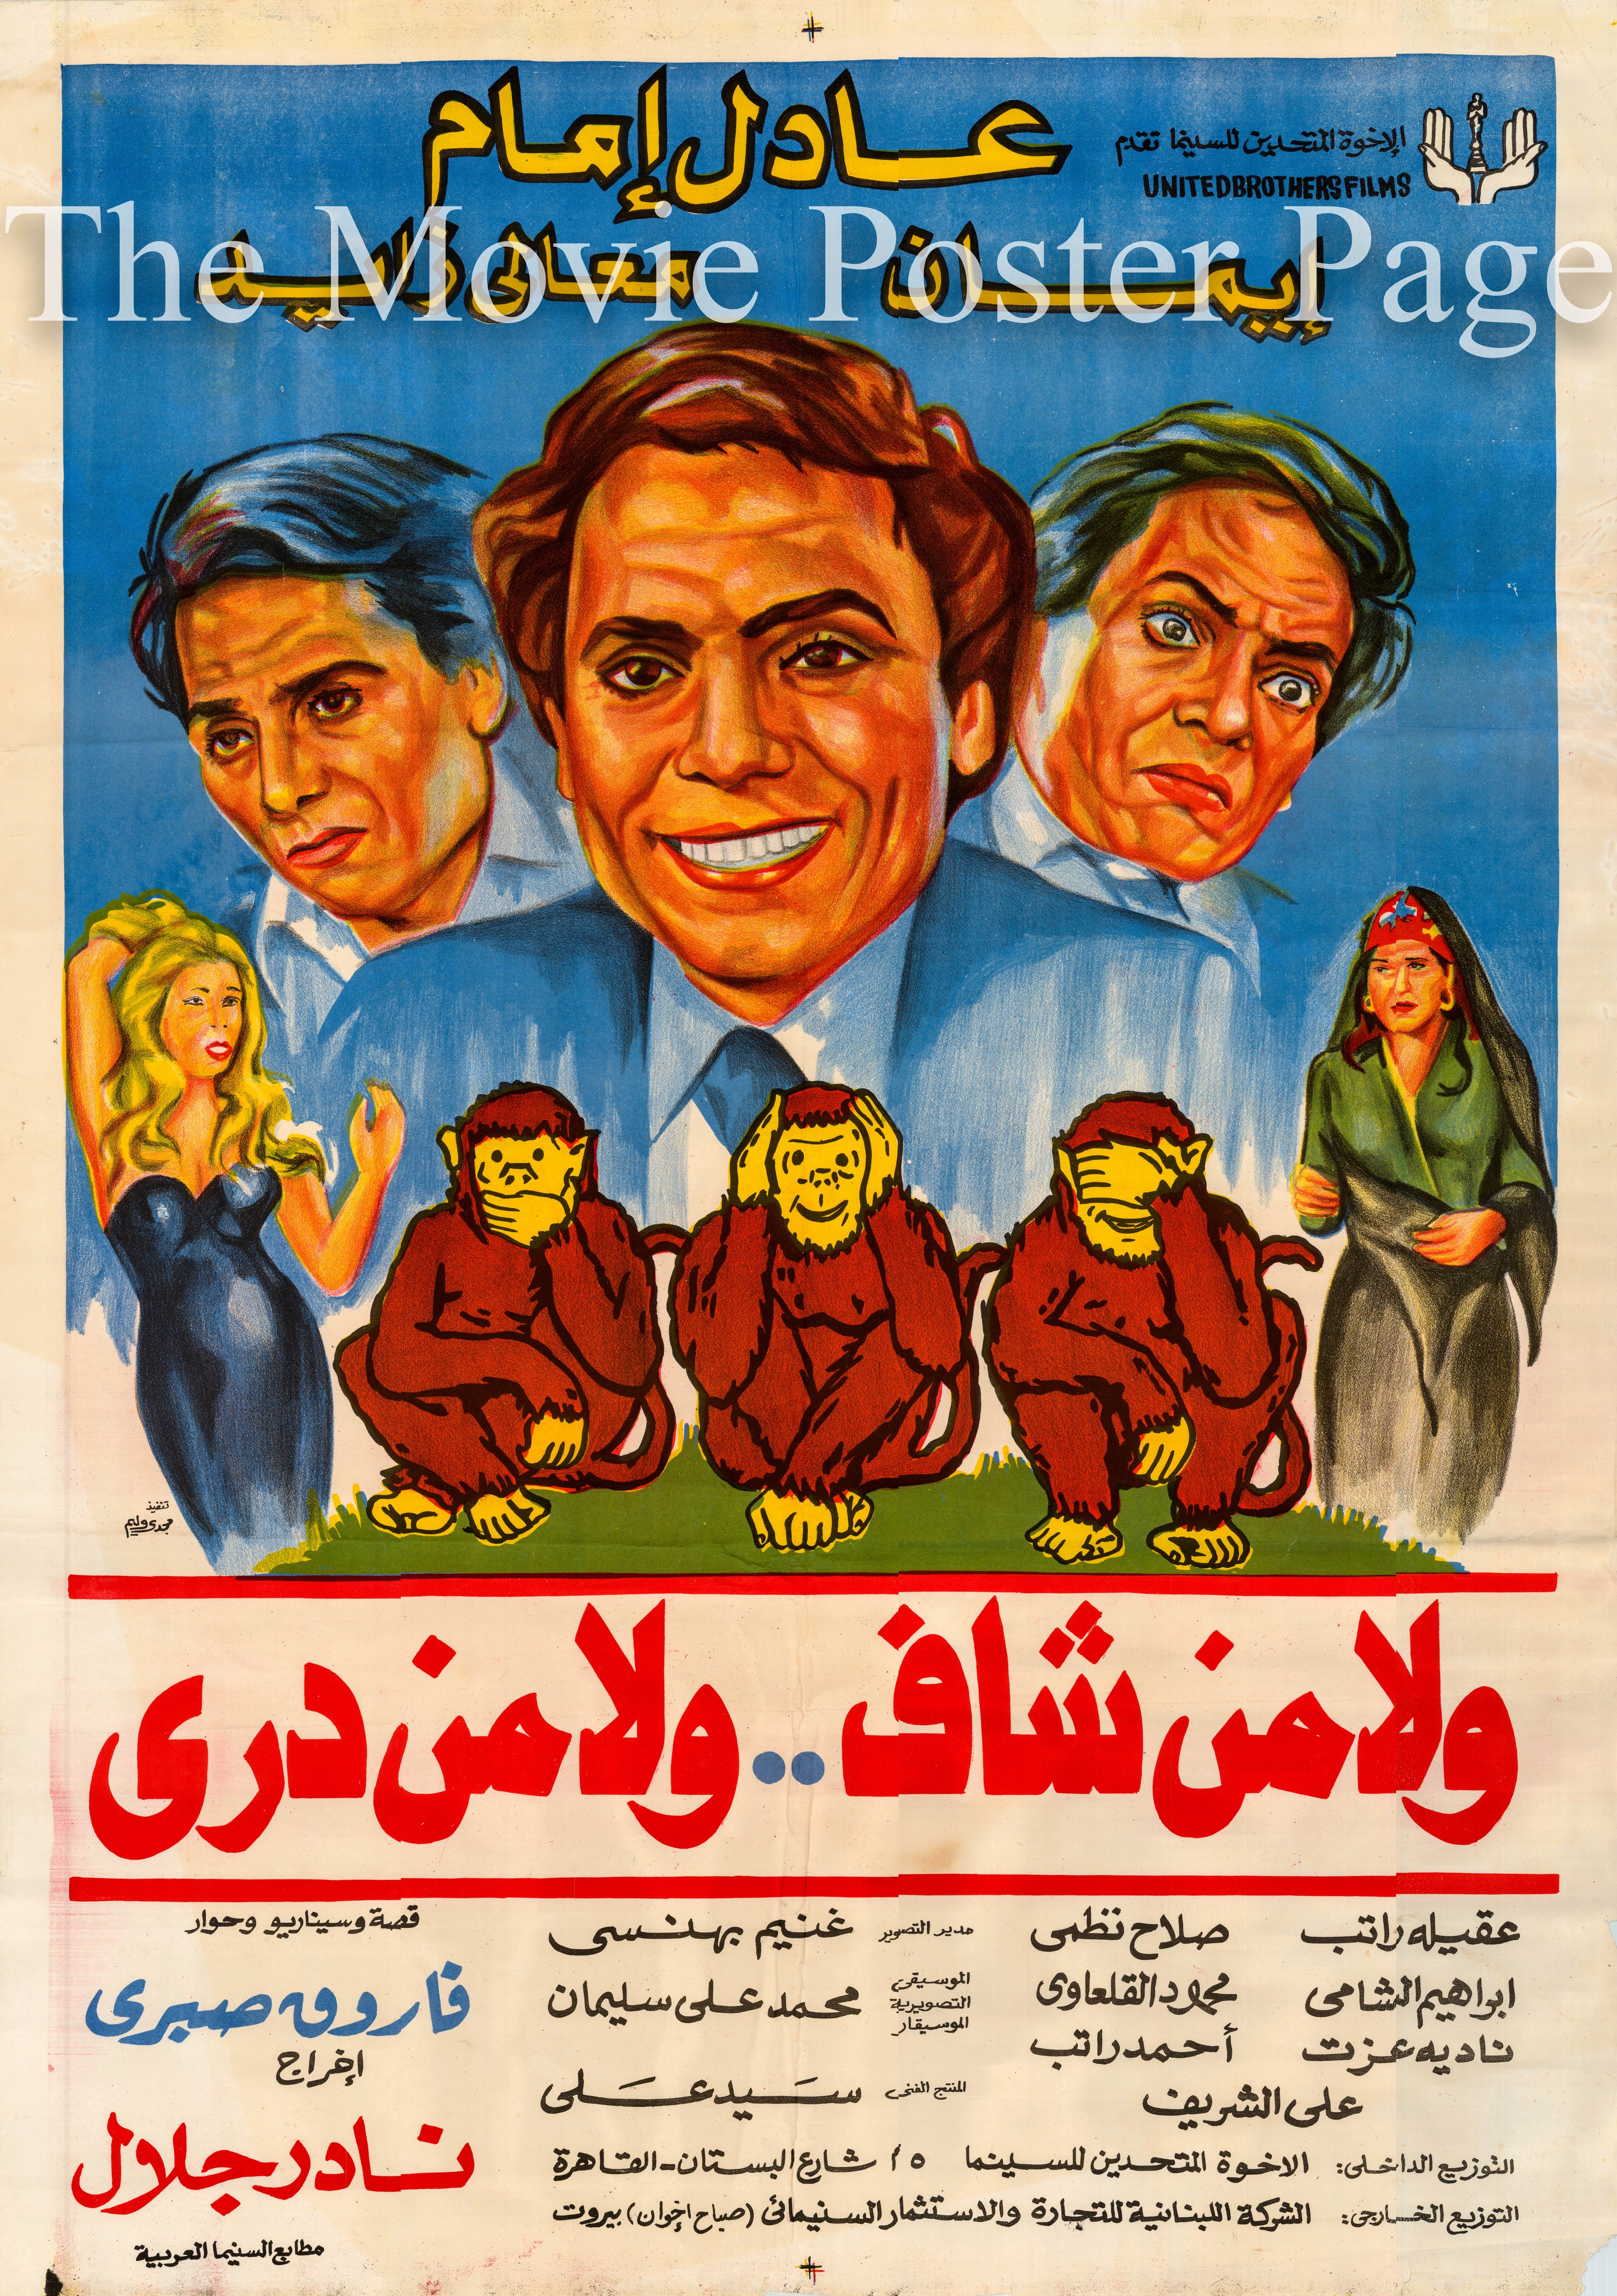 Pictured is the Egyptian promotional poster for the 1983 Nader Galal film Wala Men Shaf Wala Men Deri starring Adel Imam as Morsy.